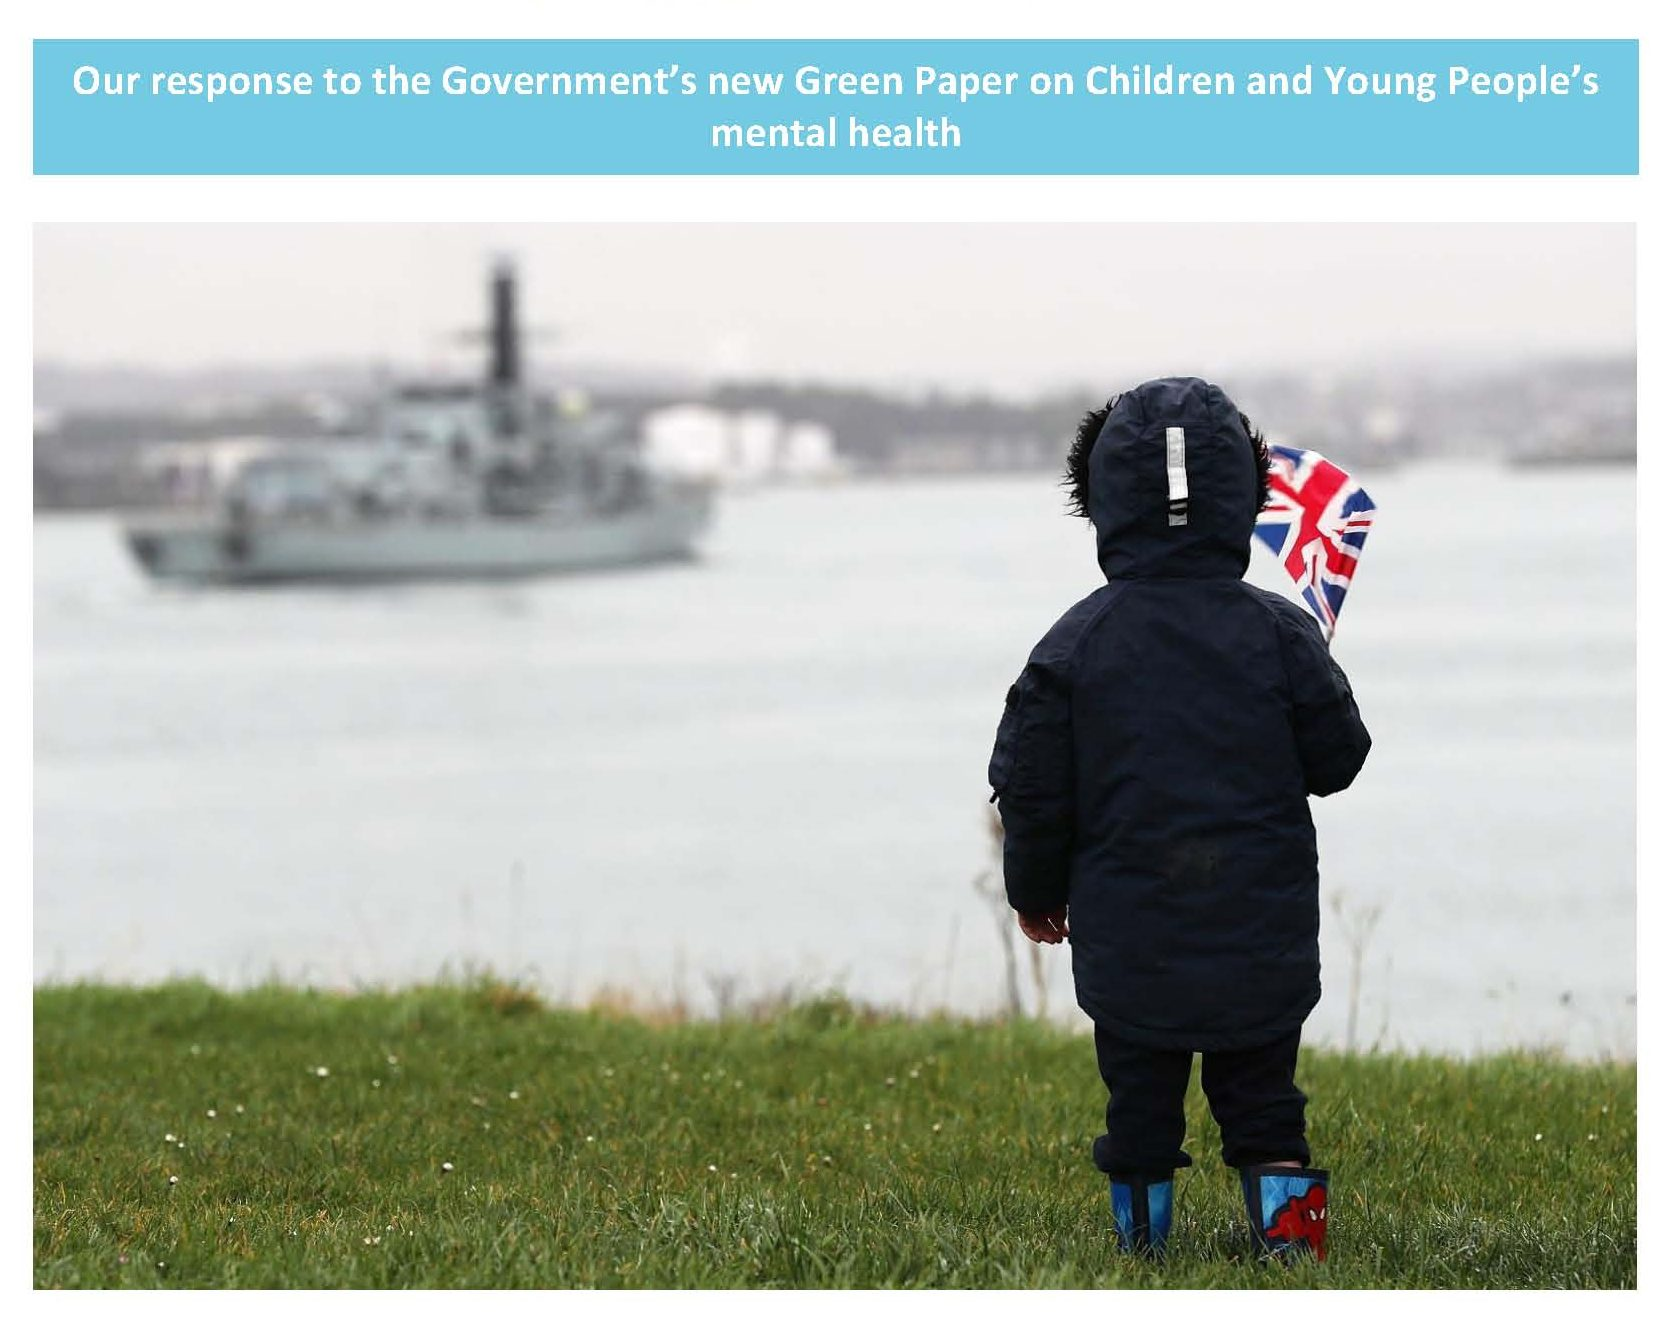 Child holding union flag looking out to see a ship coming in.